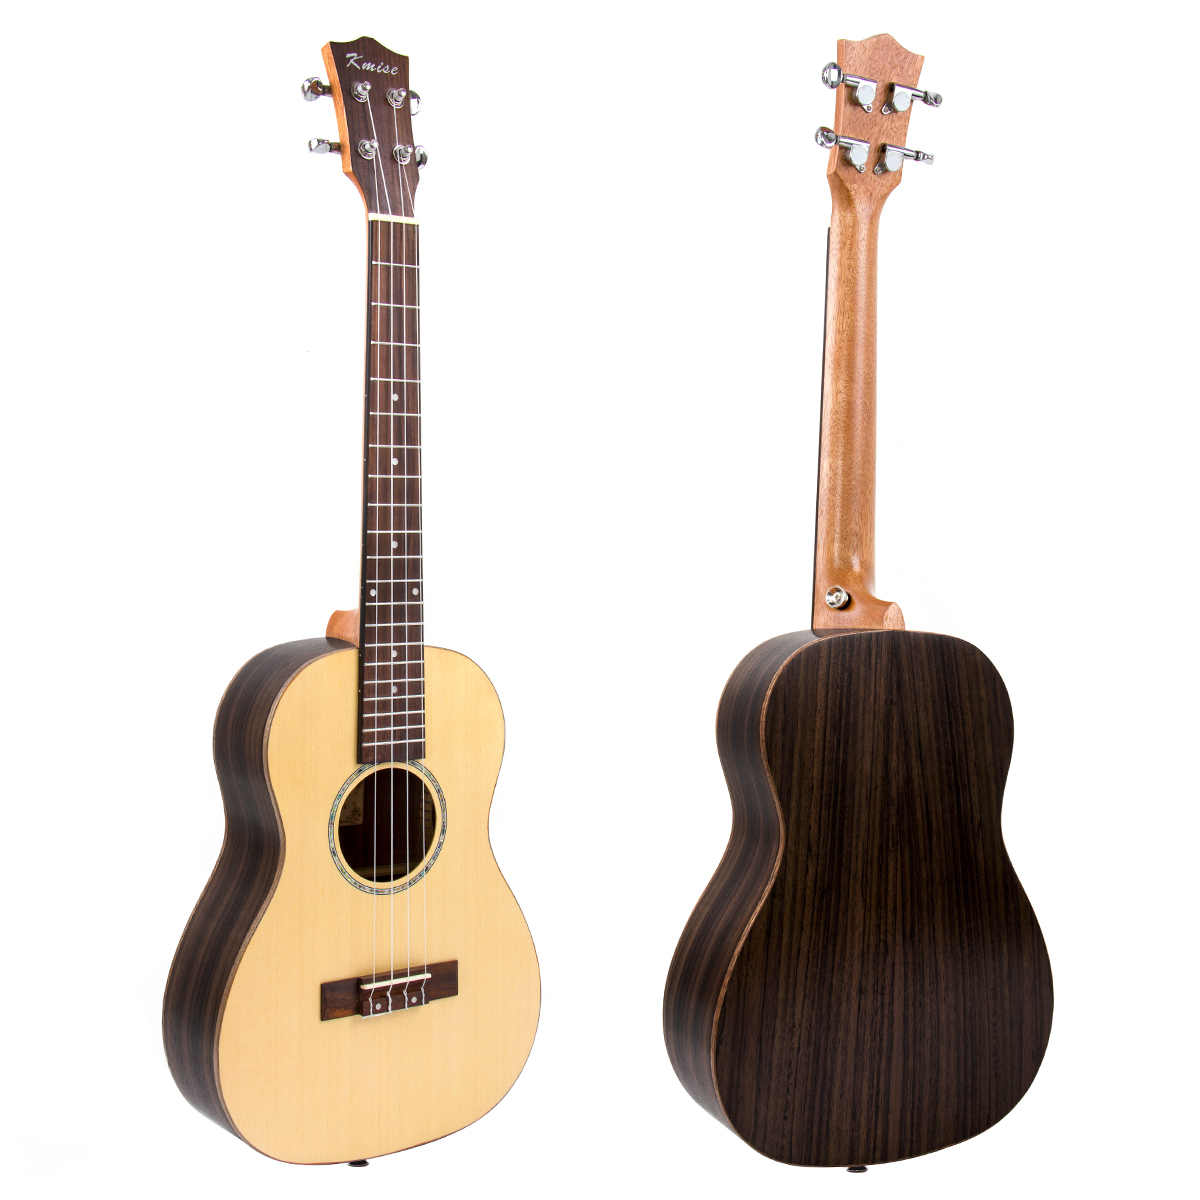 Kmise Baritone Ukulele Solid Spruce 30 inch Bone Nut & Saddle with Dual Truss Rod Aquila String G-C-E-A